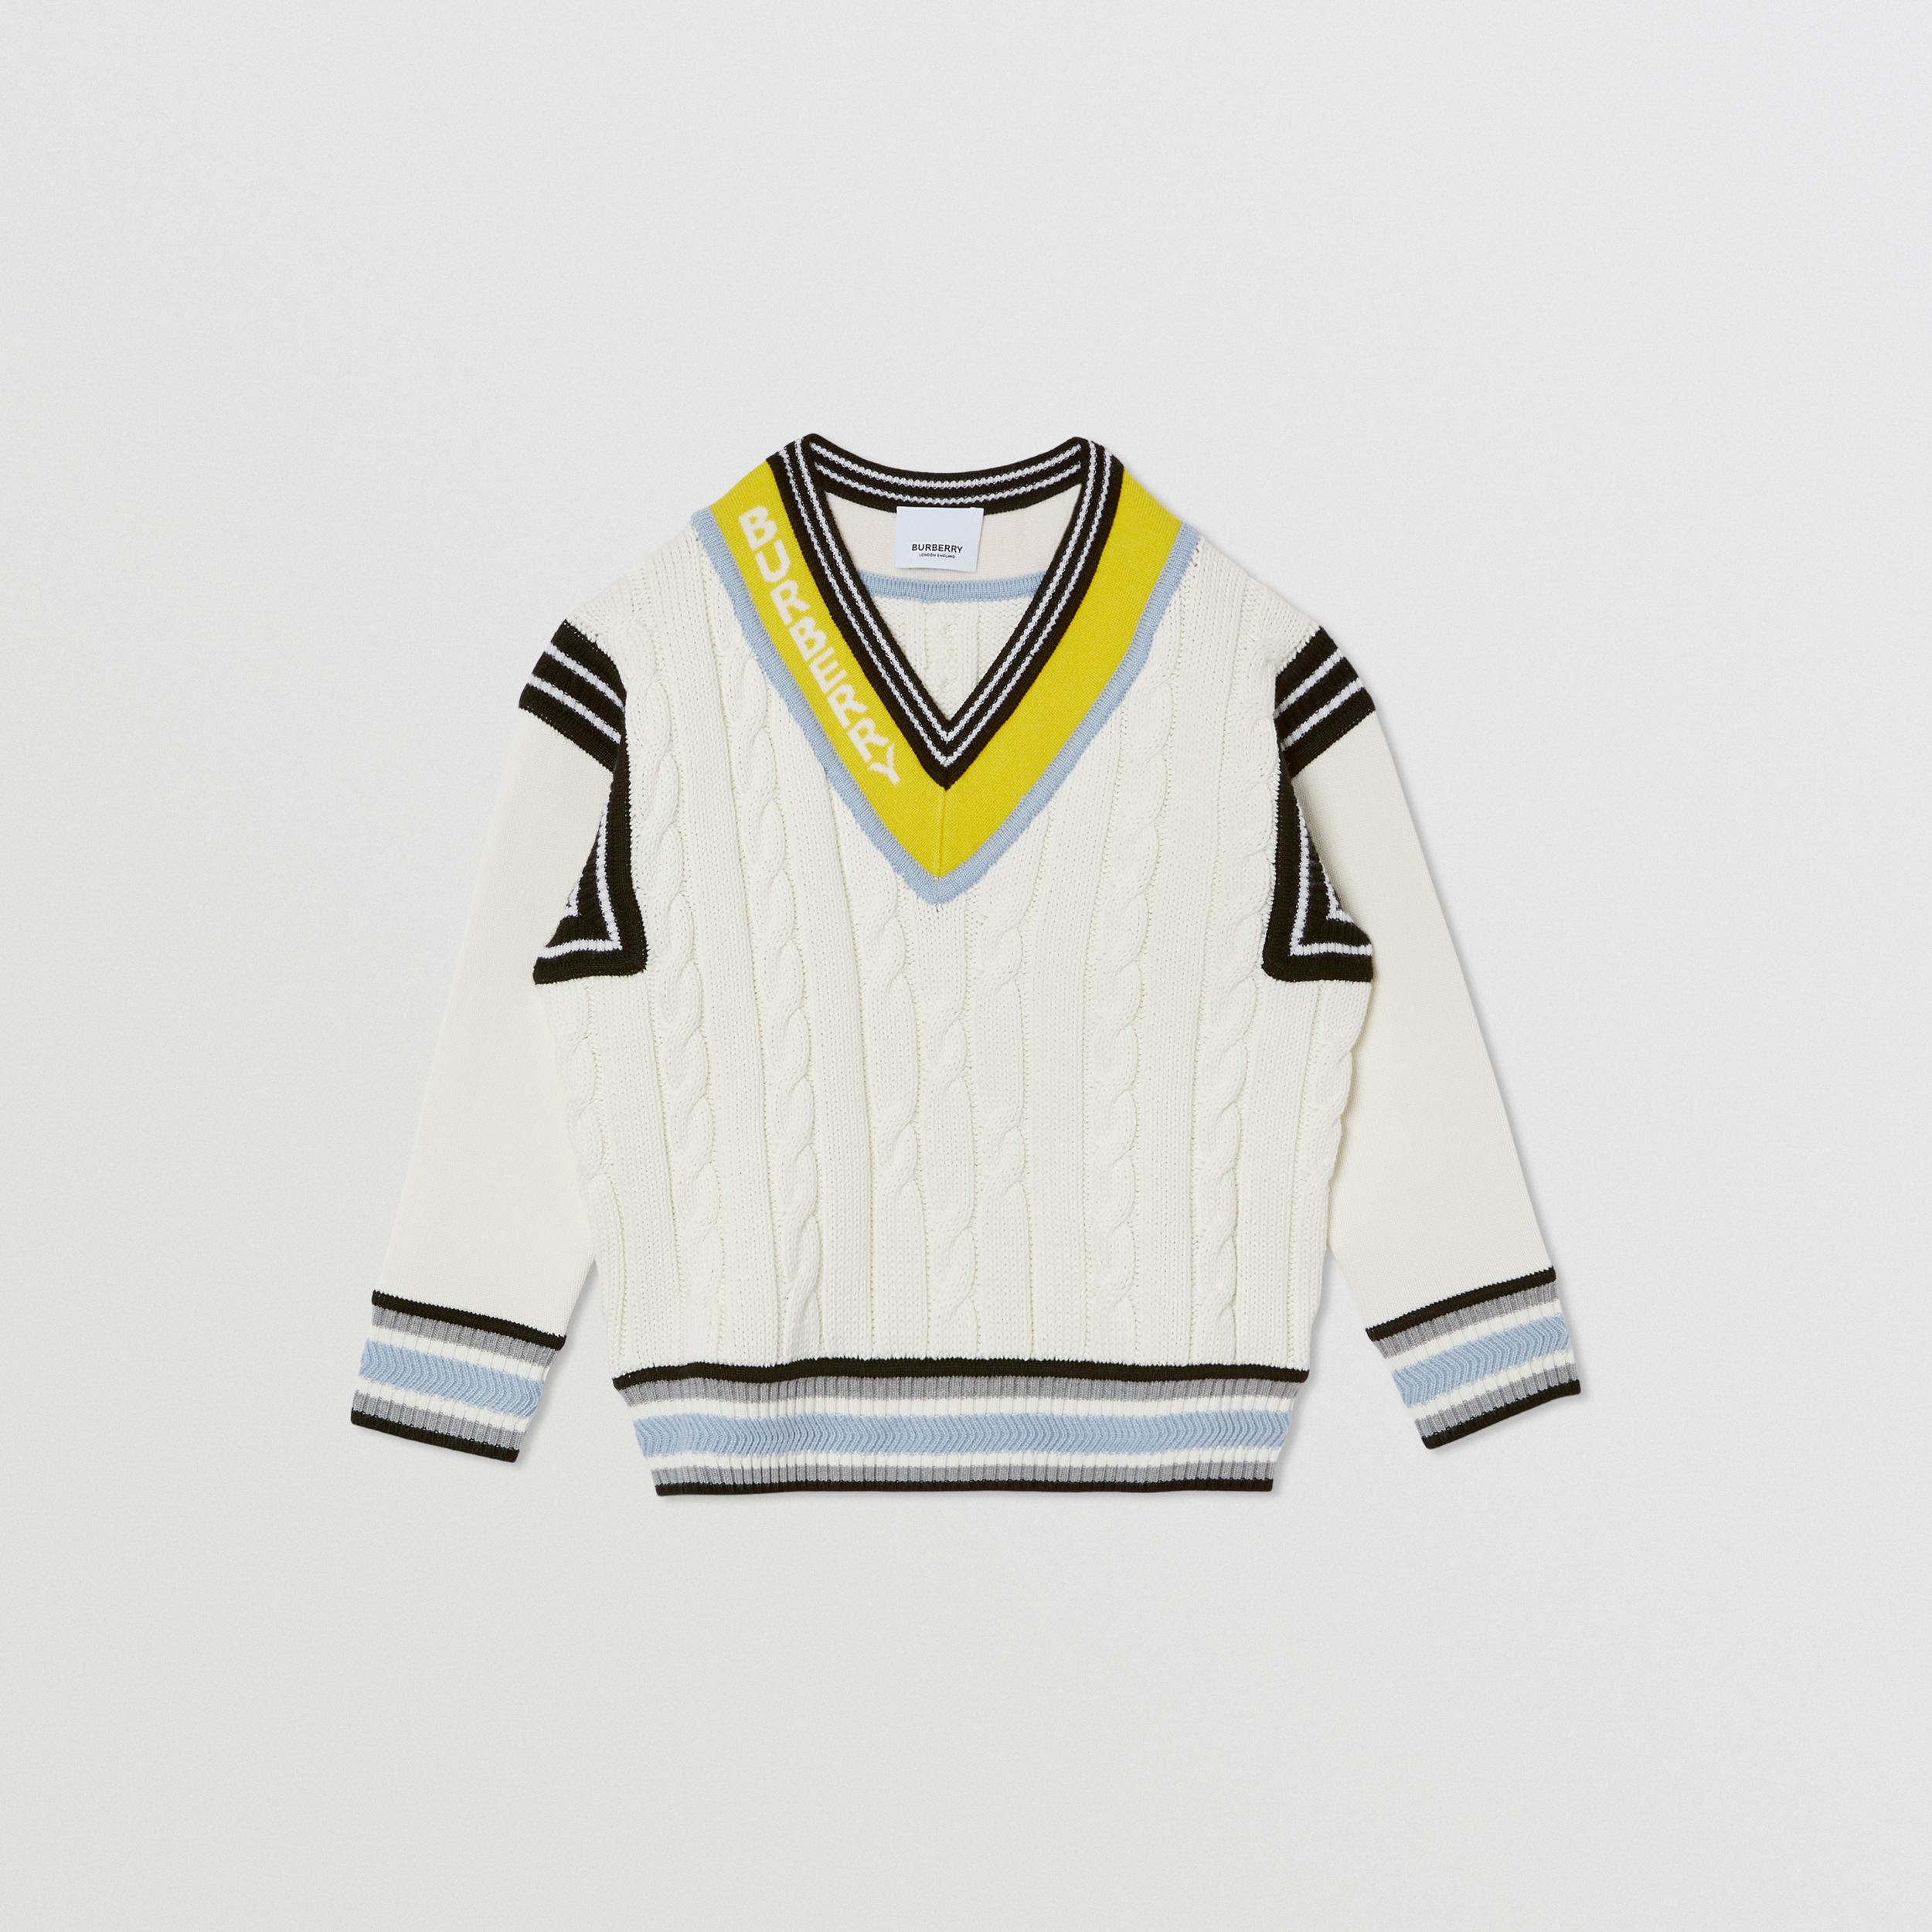 Logo Jacquard Cable Knit Cotton Cricket Sweater in White | Burberry - 1